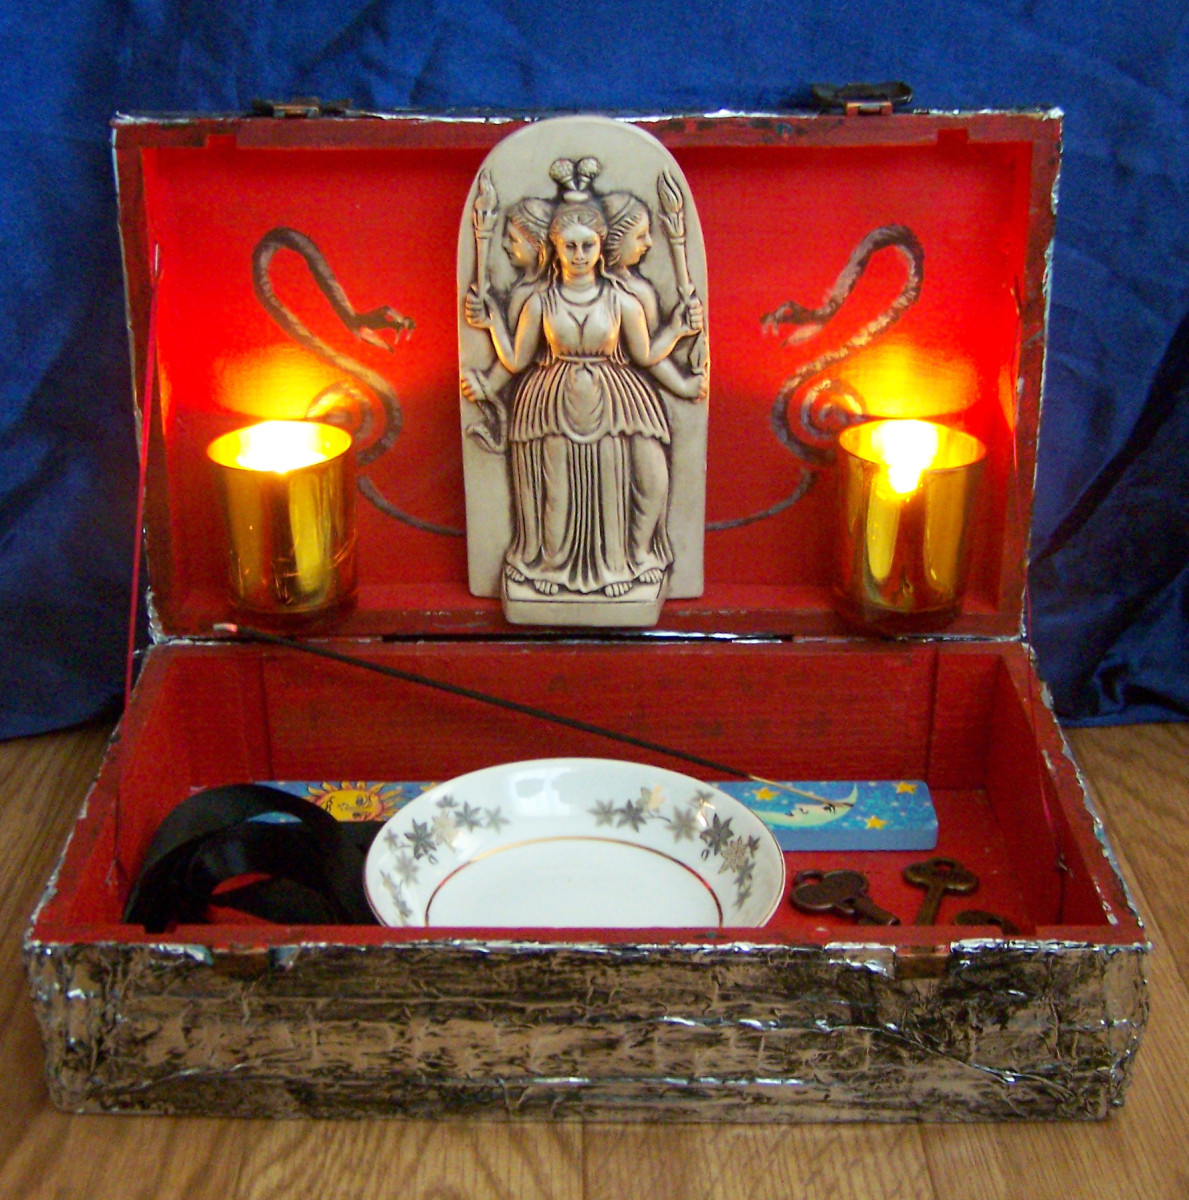 My portable Hecate shrine-- it's in a wooden cigar box so I can put it away or tote it along whenever I want.